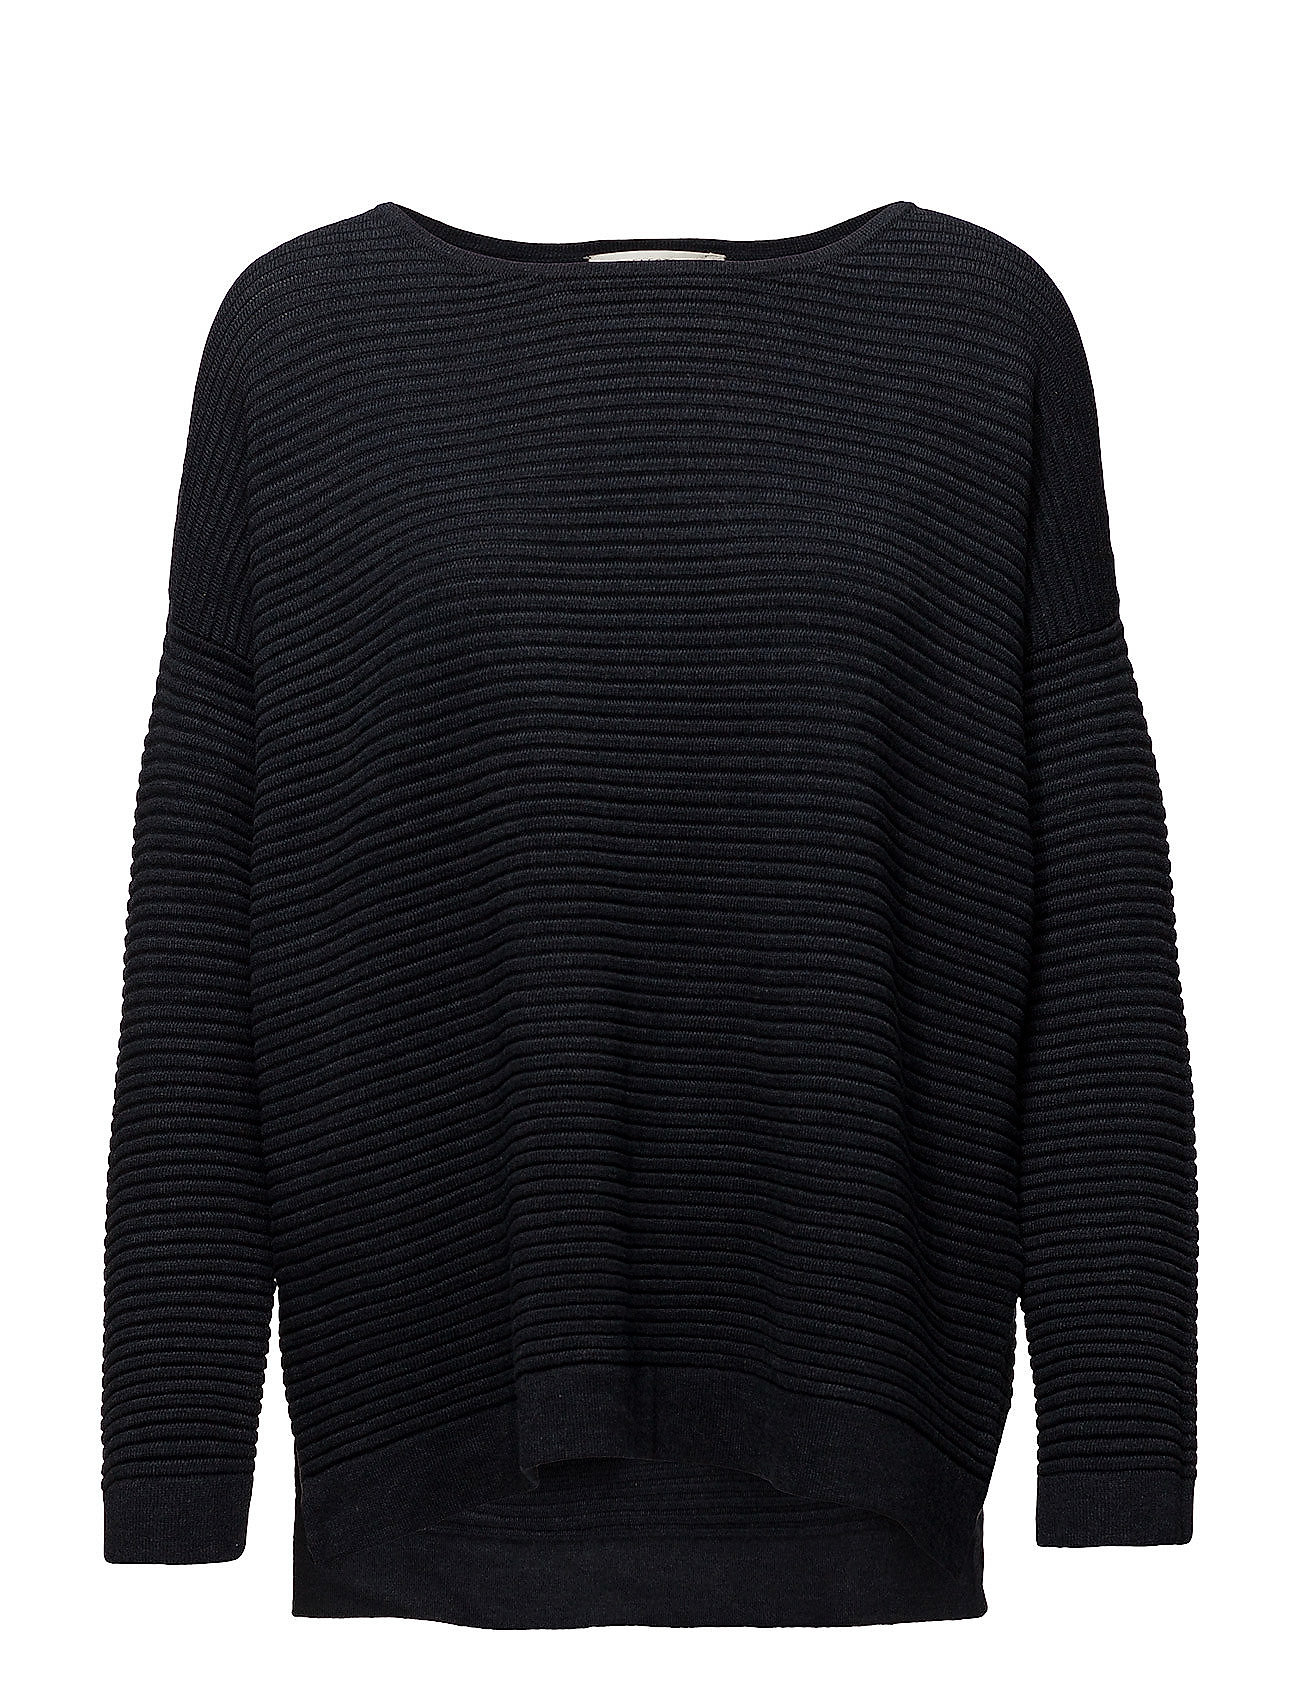 Selected Femme SFLAUA LS KNIT OVERStorlek WIDE O NECK NOOS Ögrönlar